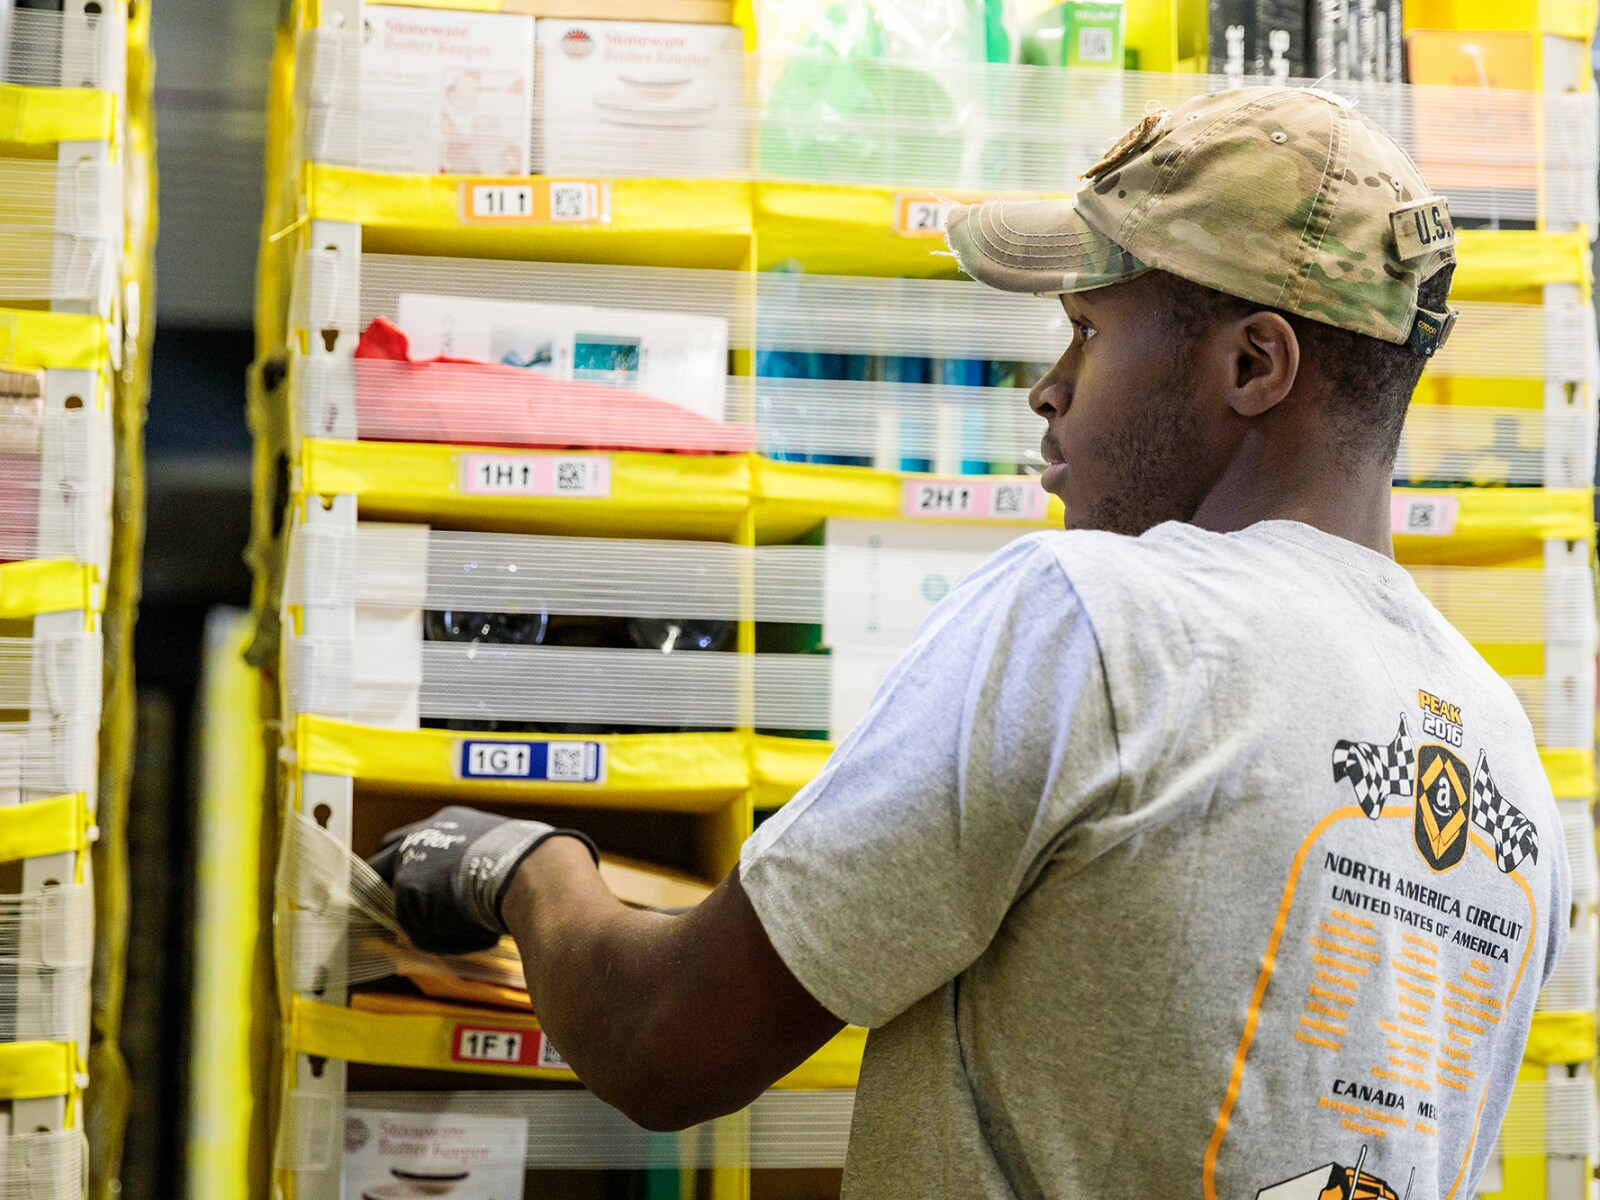 Inside Amazon's fulfillment centers